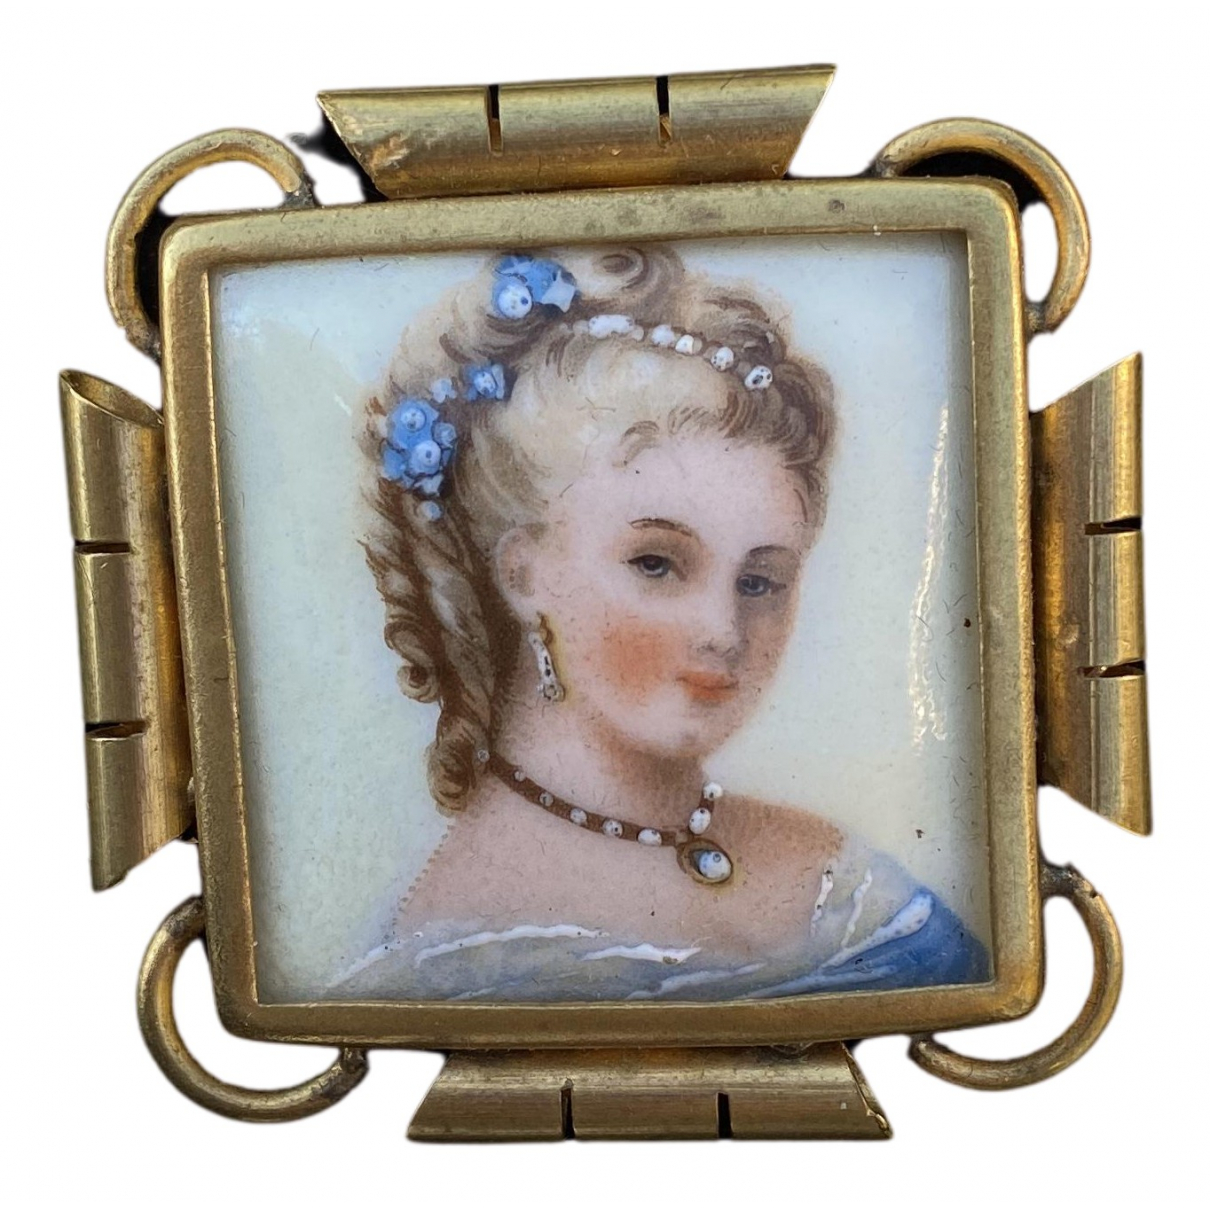 Non Signé / Unsigned N Metallic Porcelain Pins & brooches for Women N